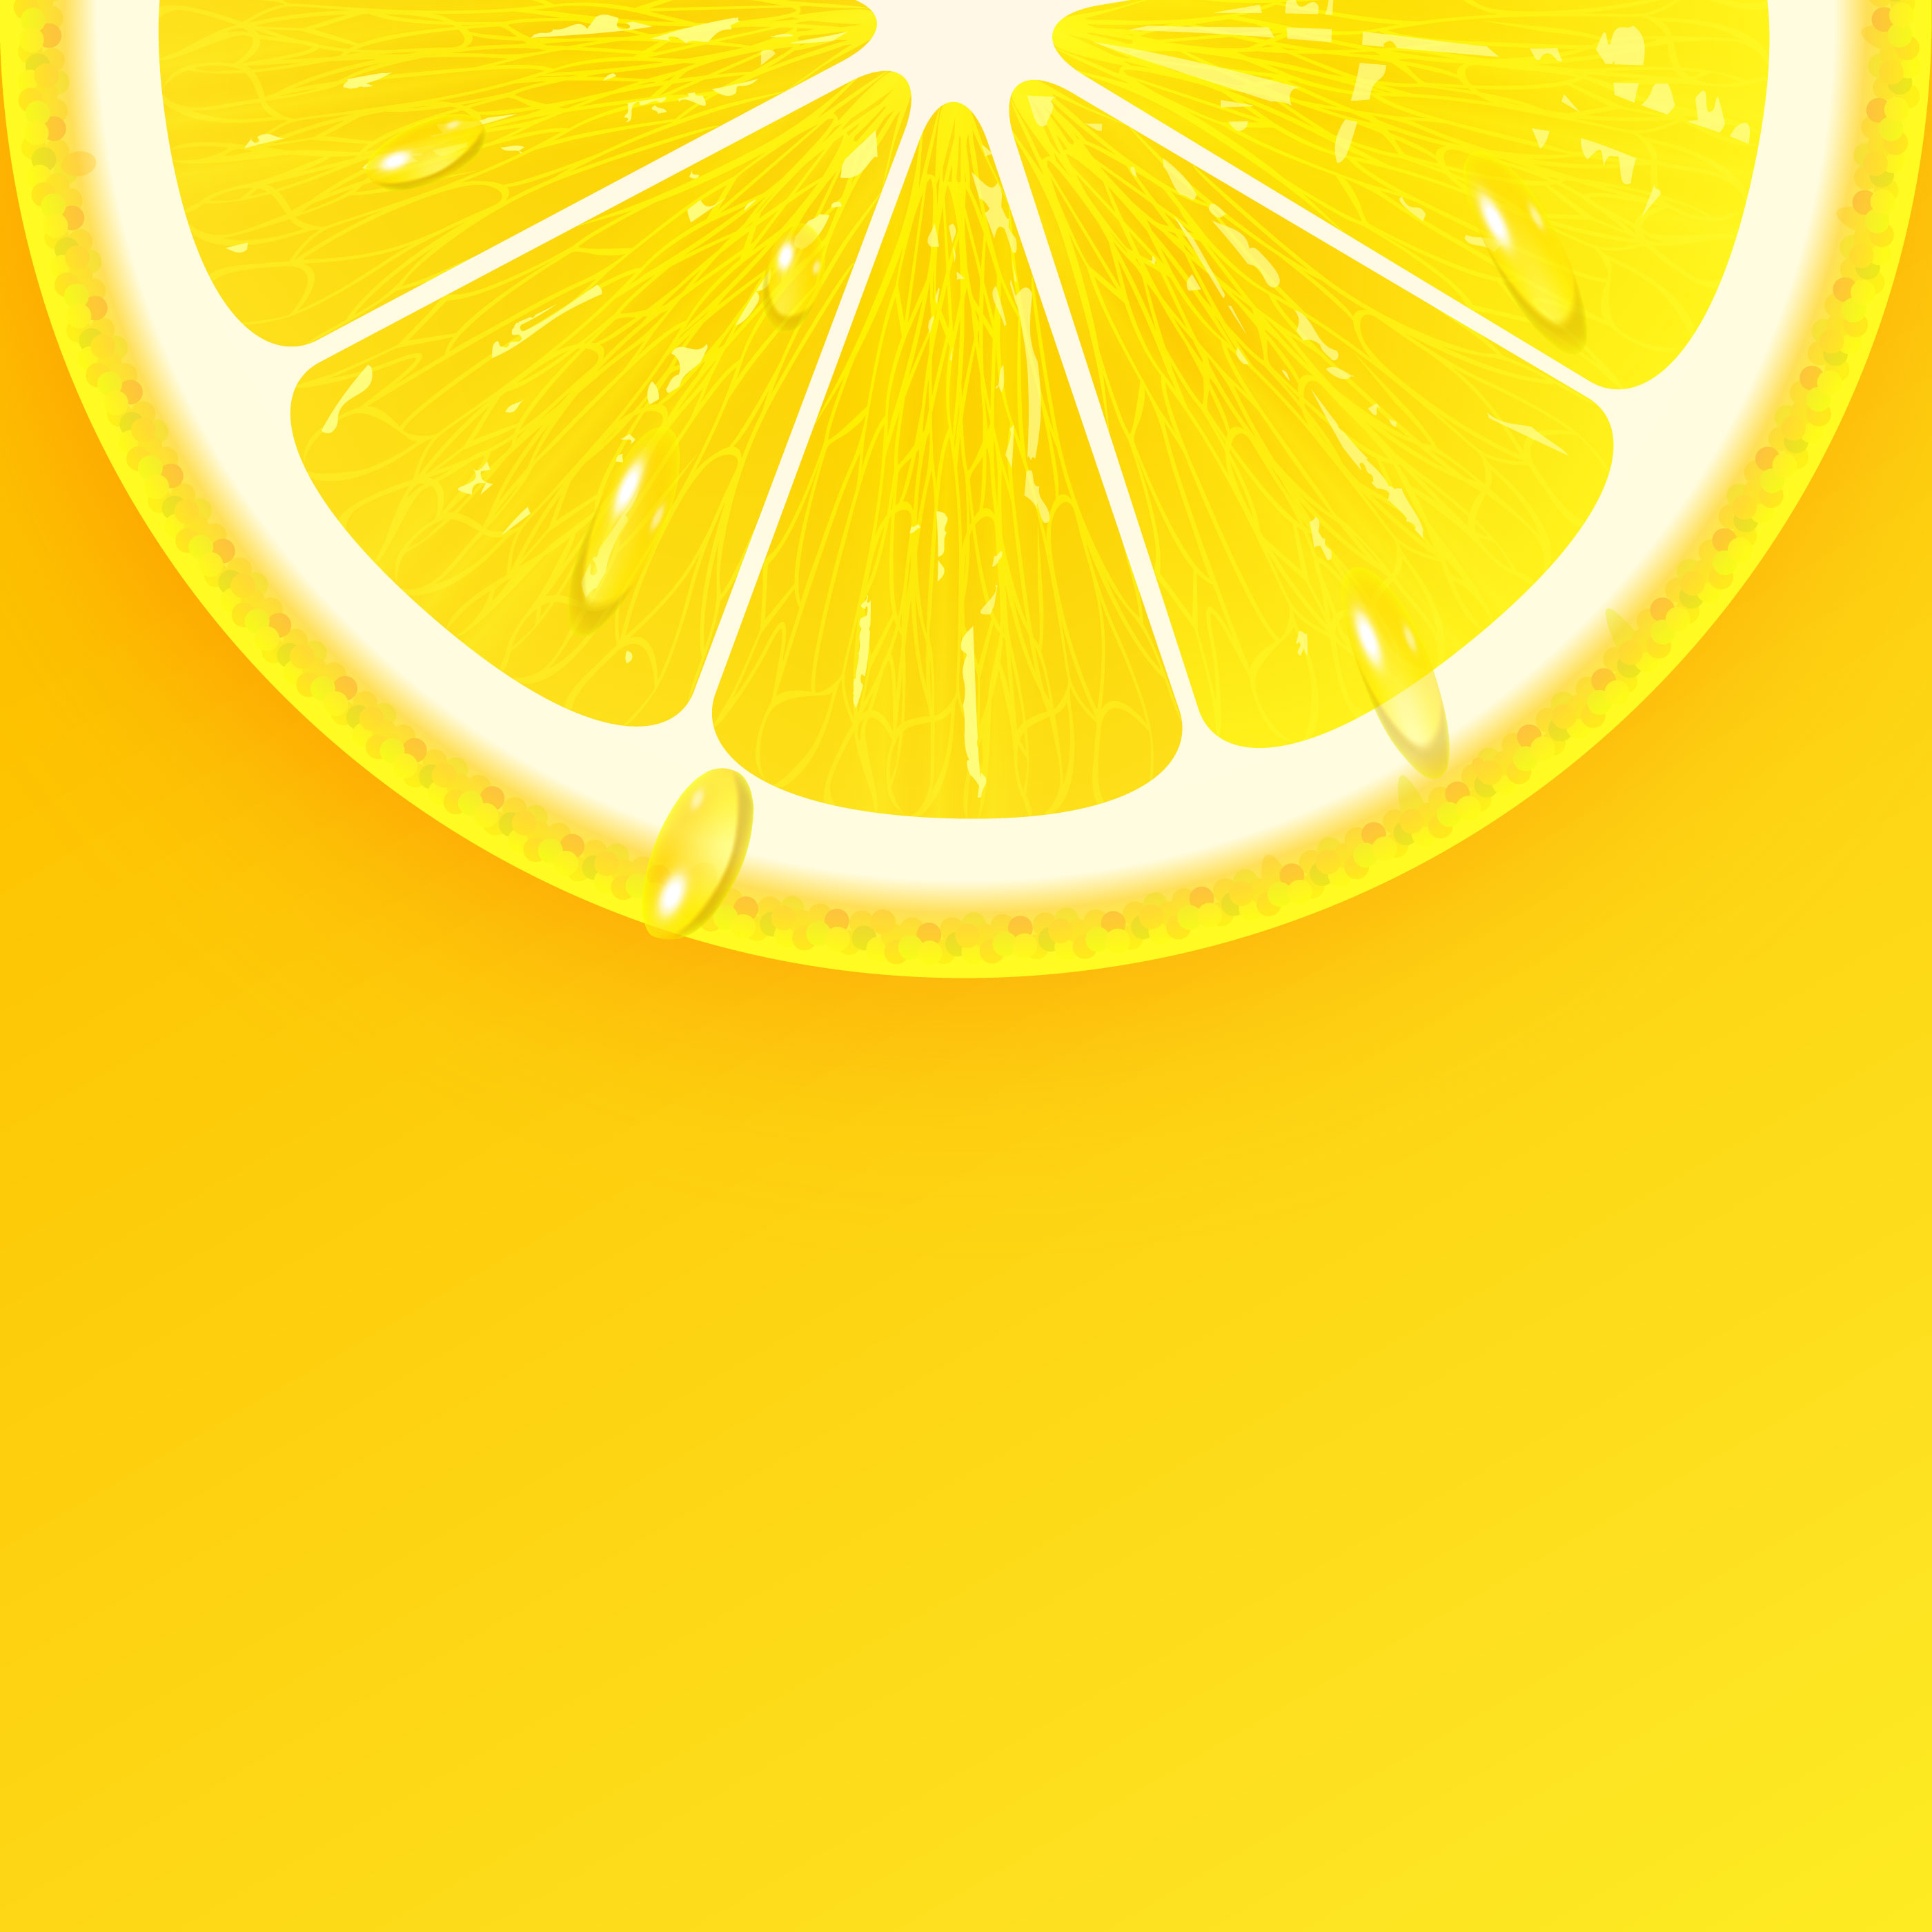 half lemon free vector art 148 free downloads half lemon free vector art 148 free